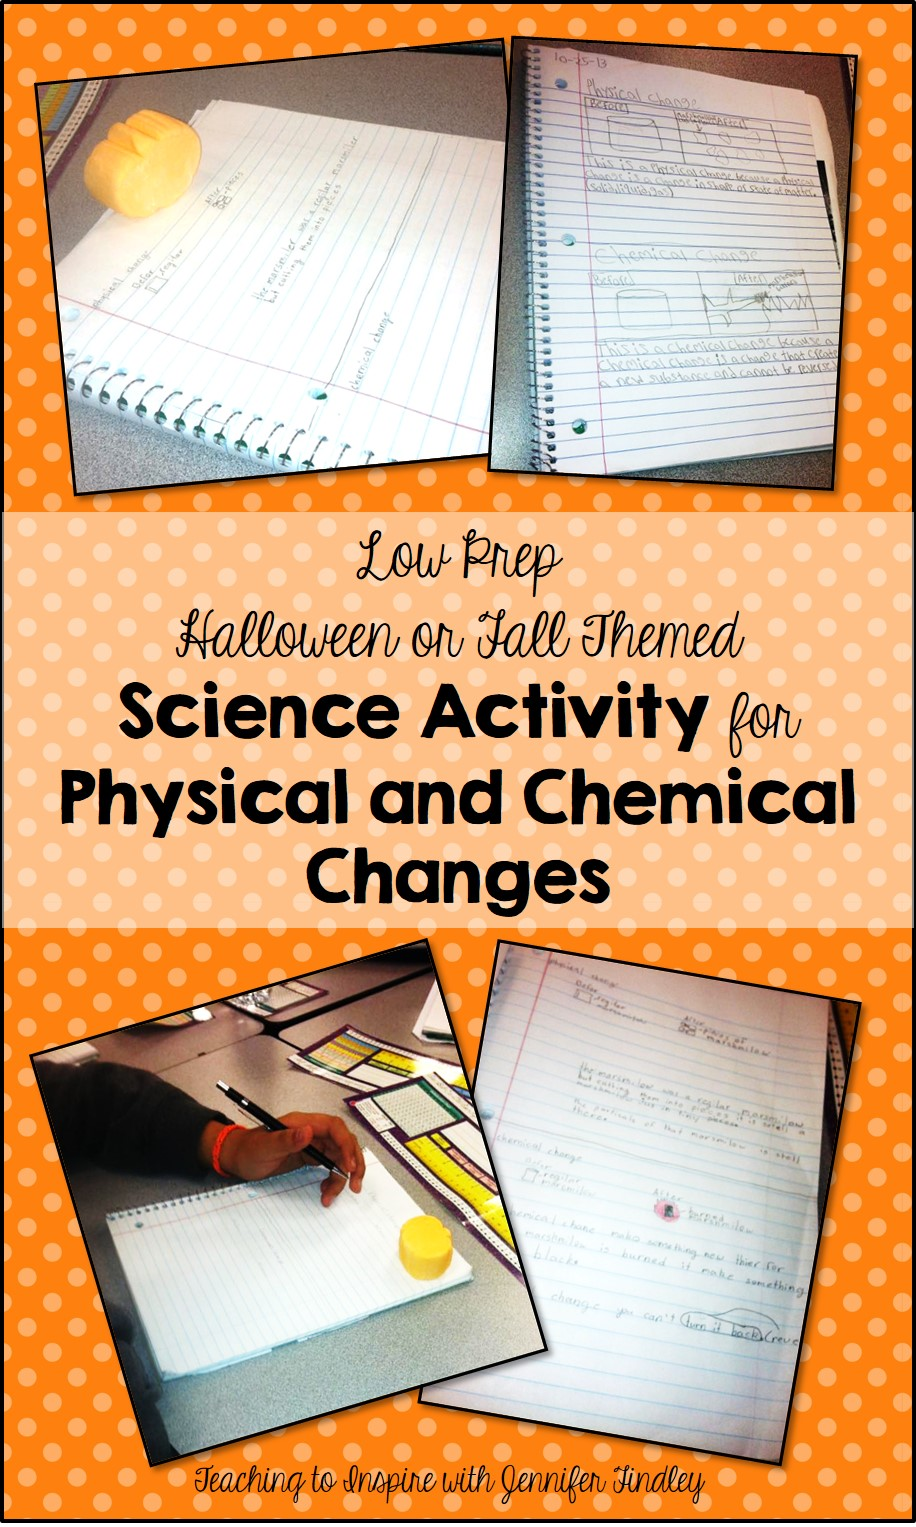 Low Prep Physical and Chemical Changes Activity with a Fall or Halloween Theme